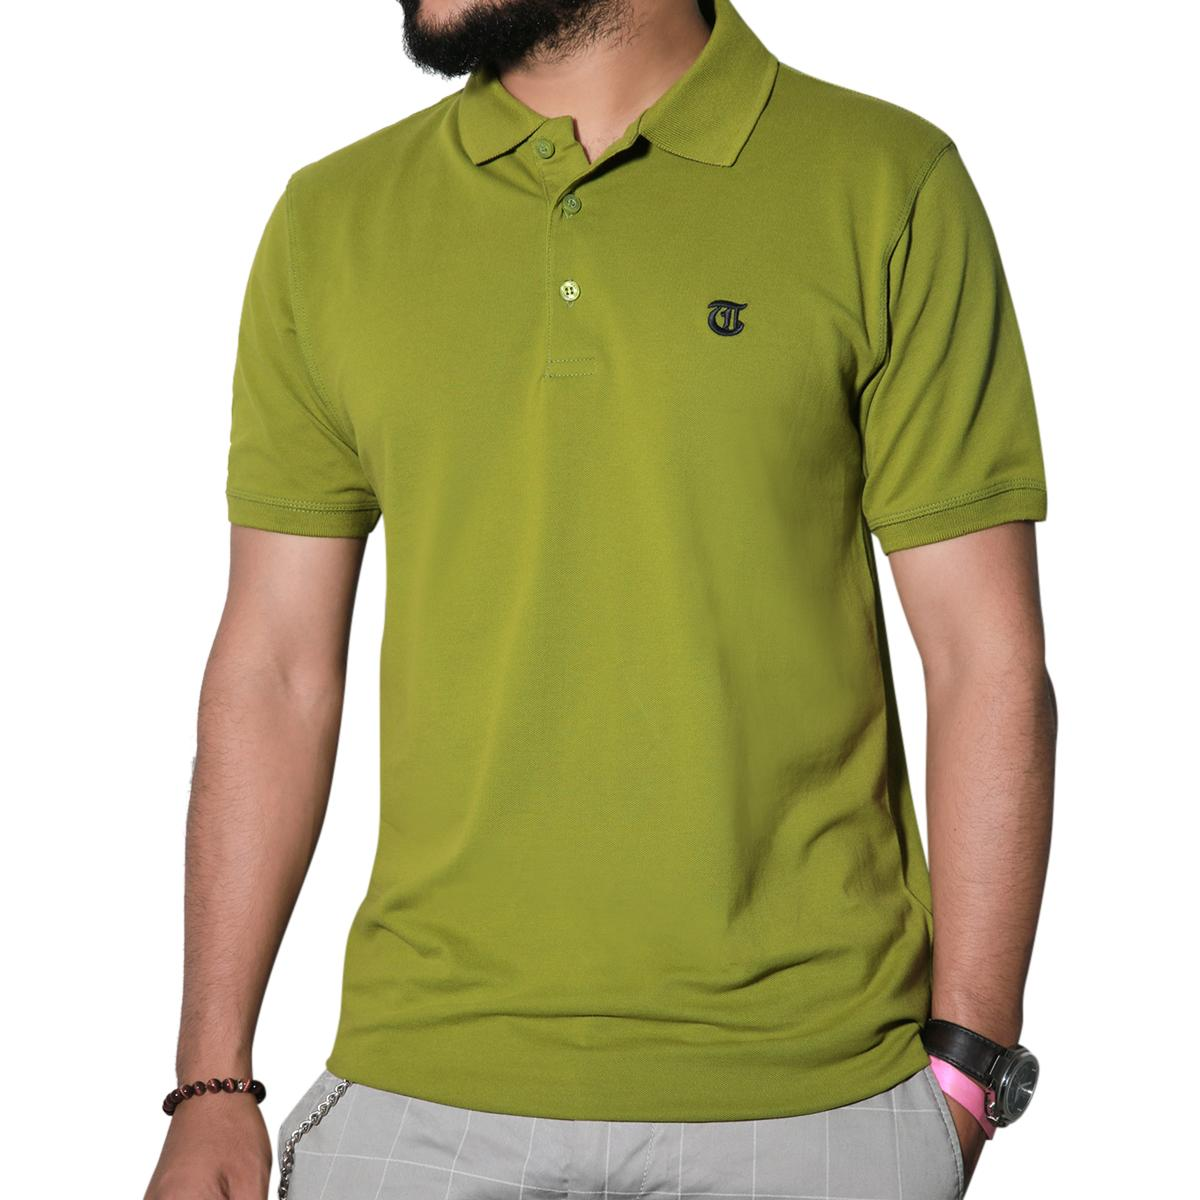 7a2a3aeeb93 Men s Polo T Shirts In Bangladesh At Best Price - Daraz.com.bd